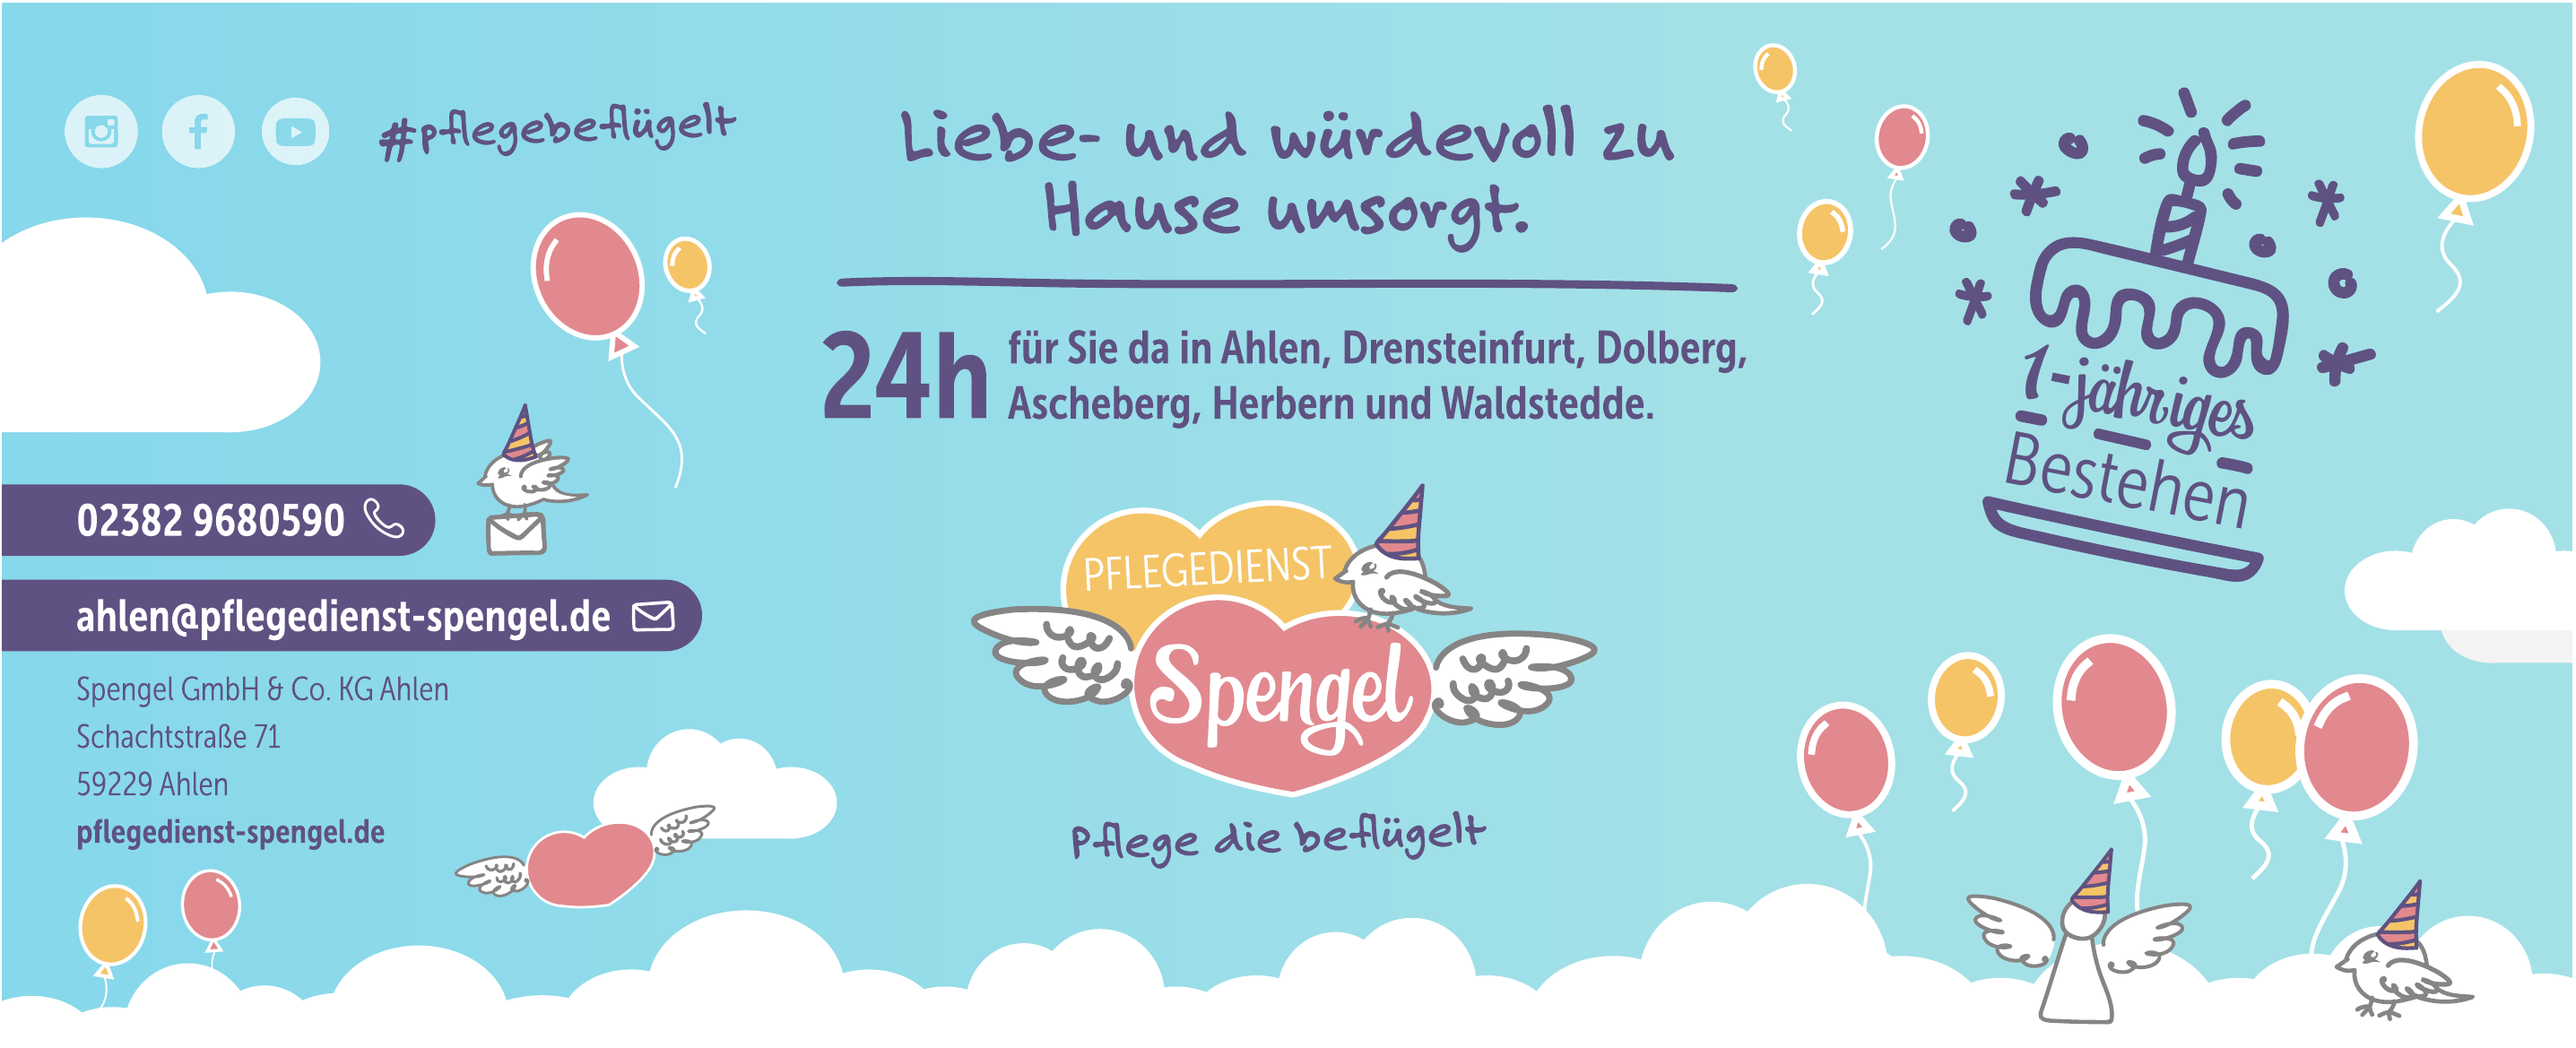 Spengel GmbH & Co. KG Ahlen